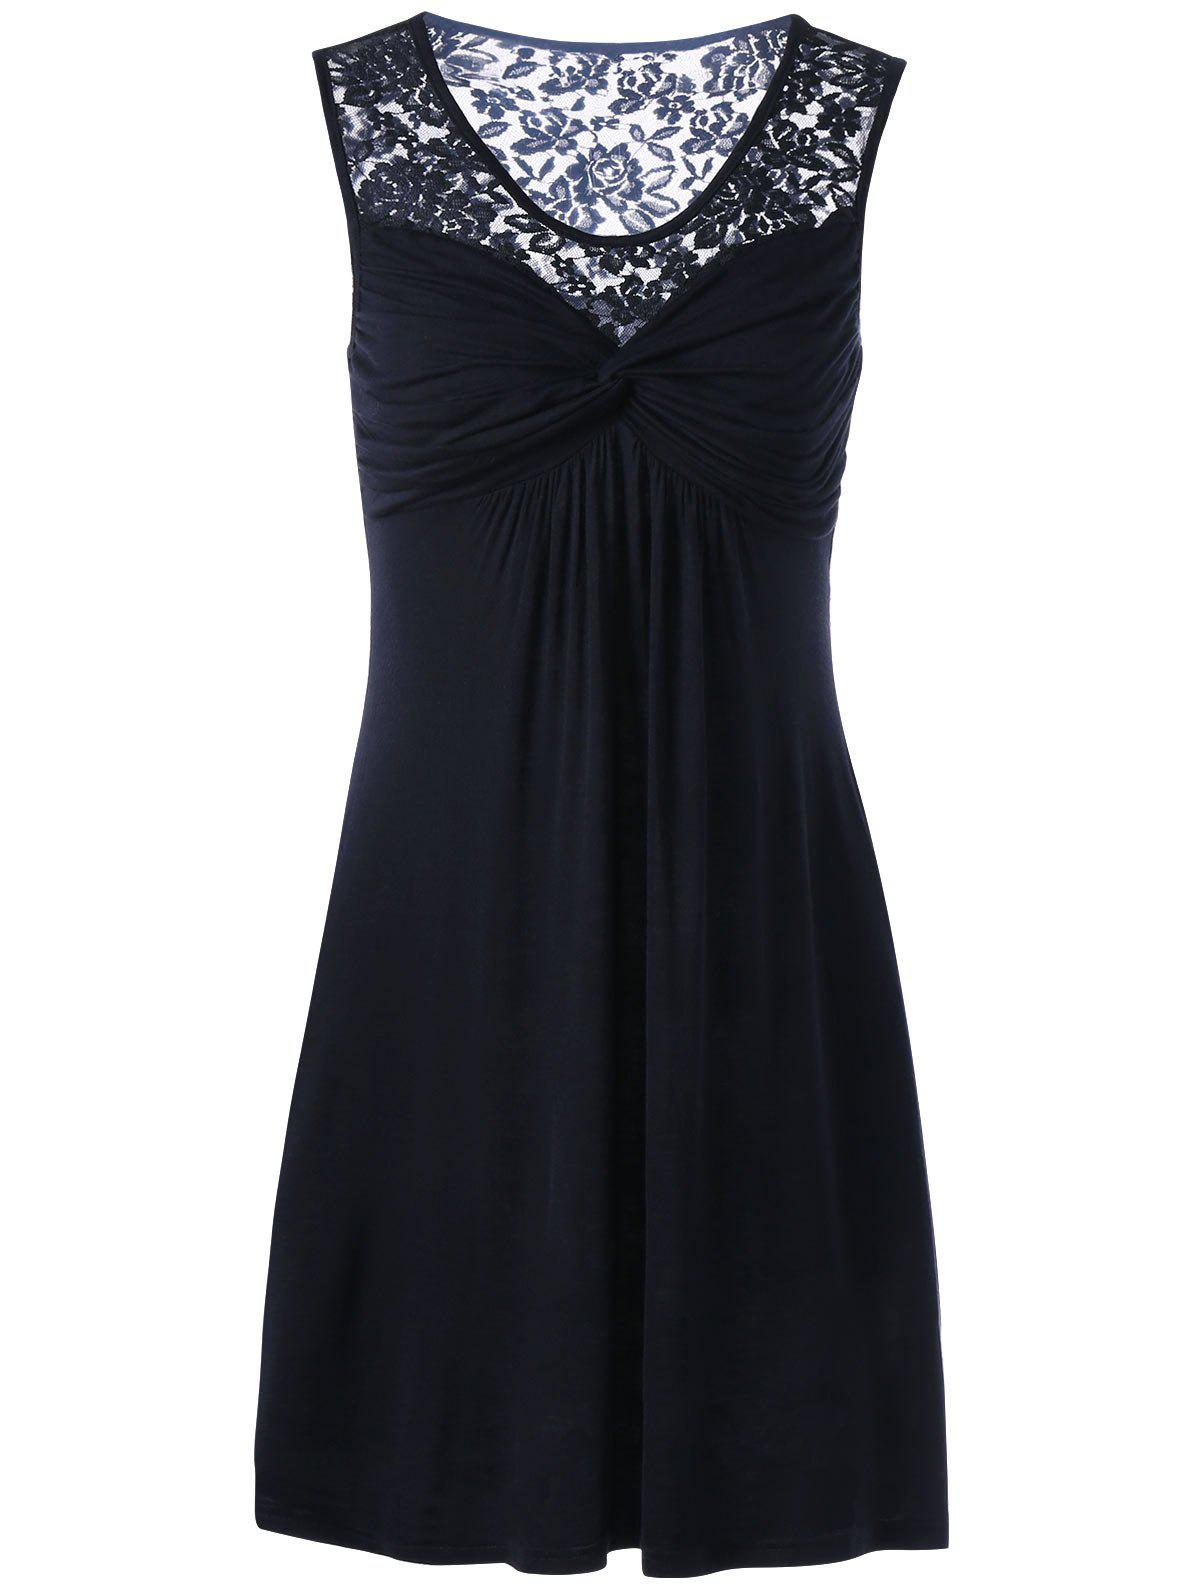 Twist Front Lace Panel Sleeveless DressWOMEN<br><br>Size: M; Color: BLACK; Style: Casual; Material: Rayon,Spandex; Silhouette: Straight; Dresses Length: Knee-Length; Neckline: Round Collar; Sleeve Length: Sleeveless; With Belt: No; Season: Summer; Weight: 0.3300kg; Package Contents: 1 x Dress; Occasion: Outdoor;